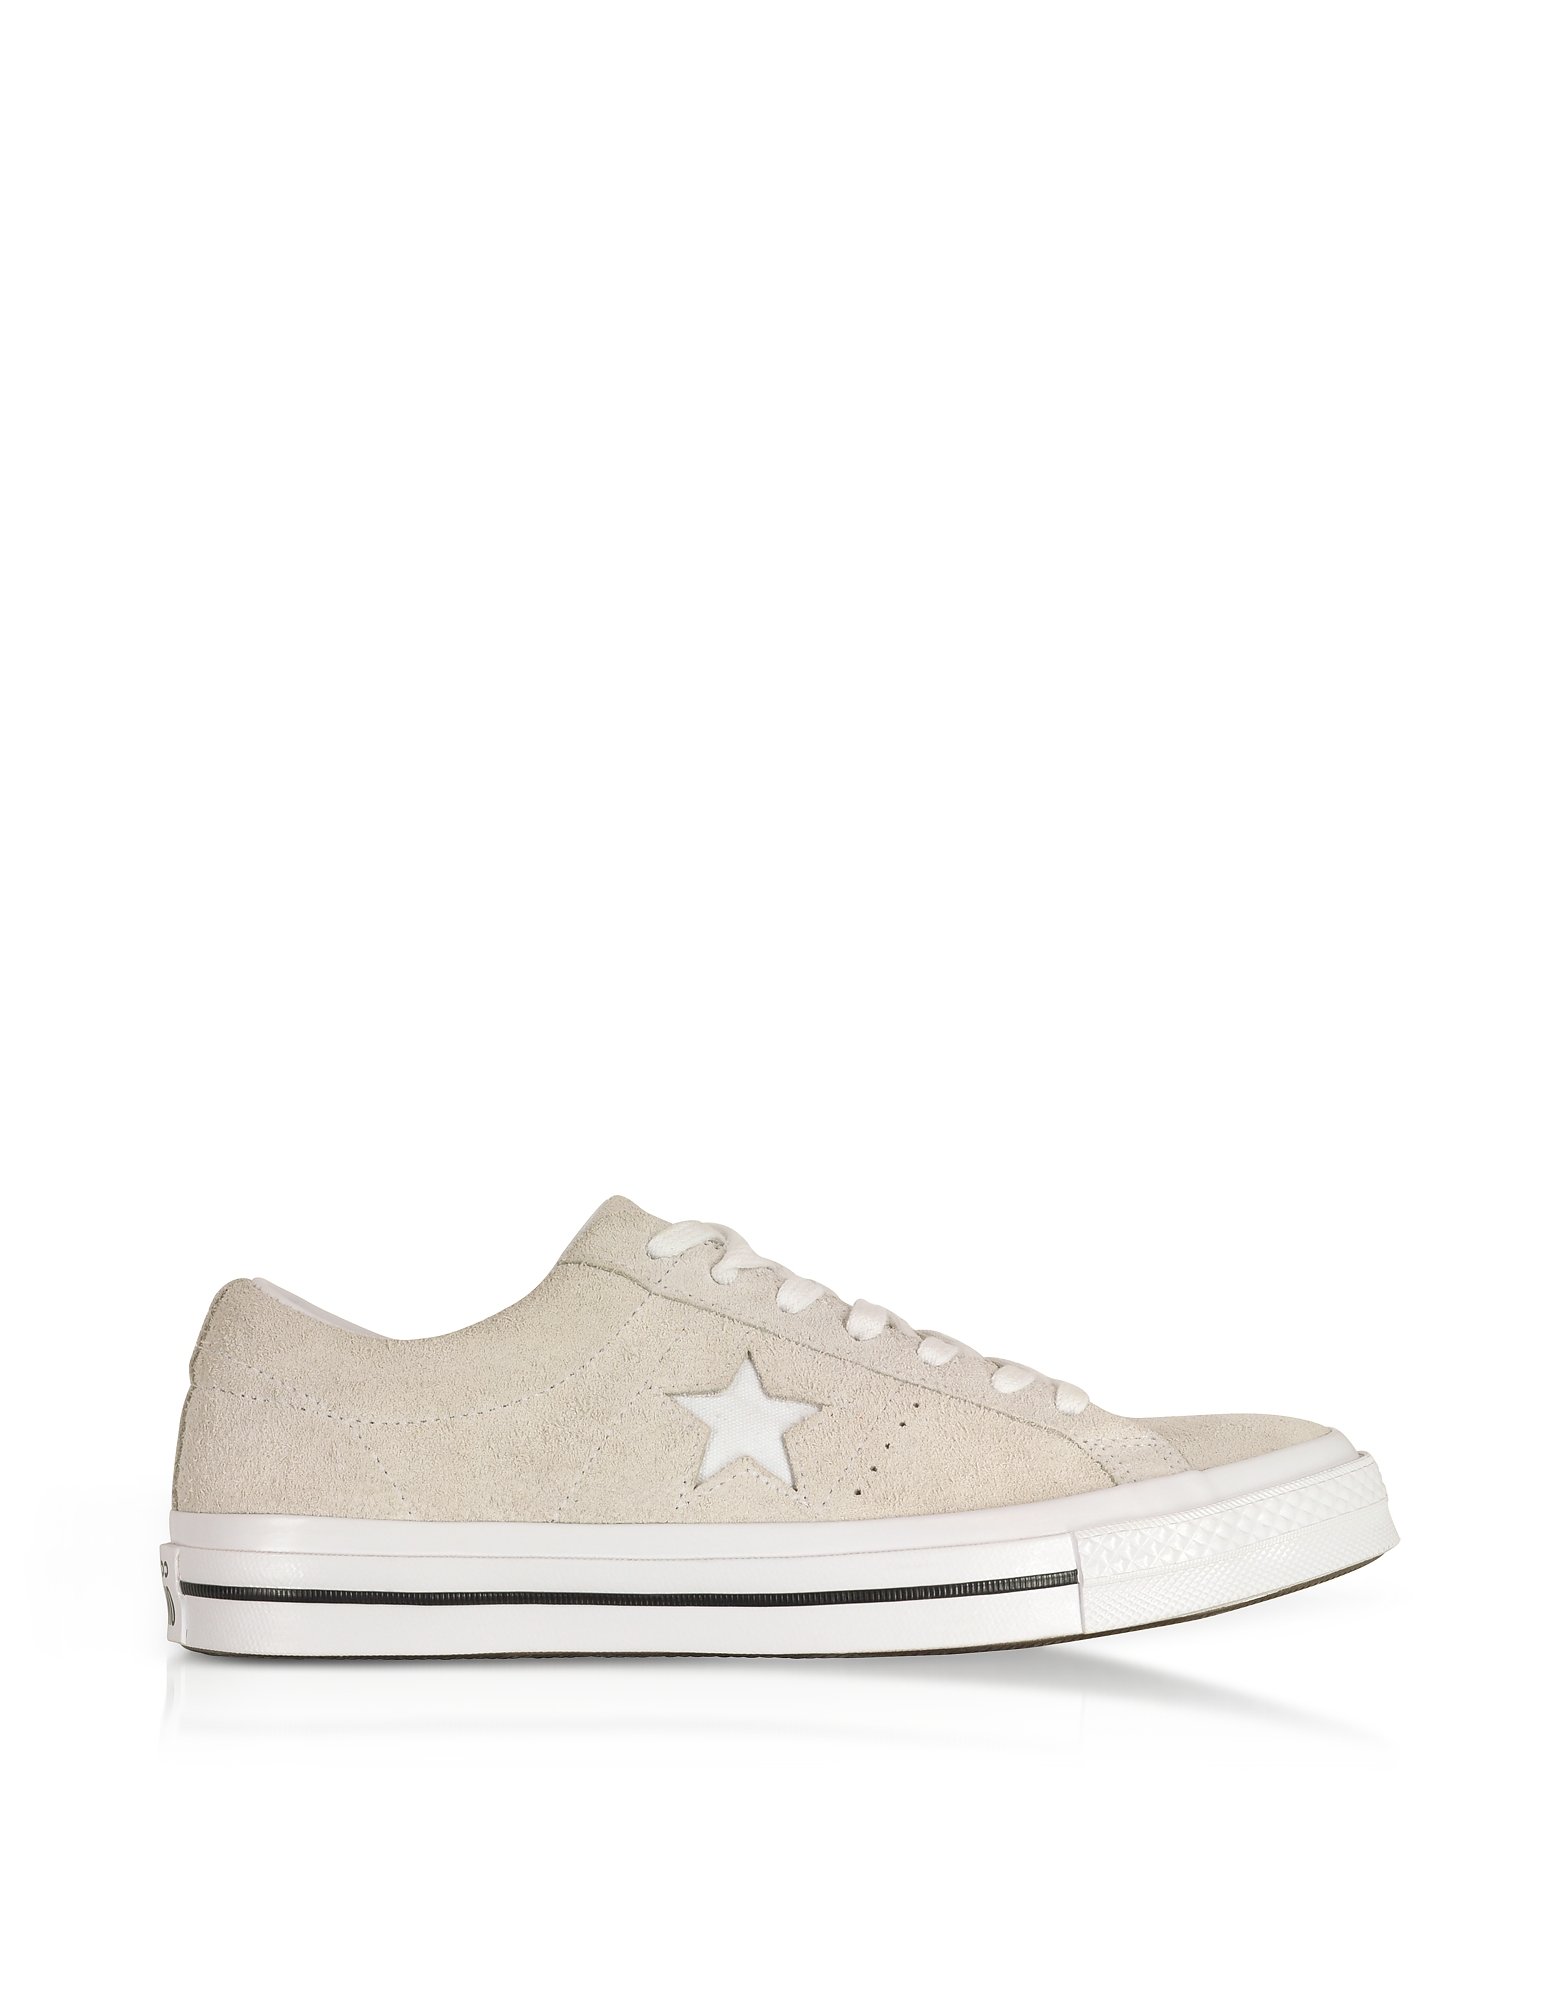 Converse Limited Edition Shoes, One Star Ox White Low Top Men's Sneakers